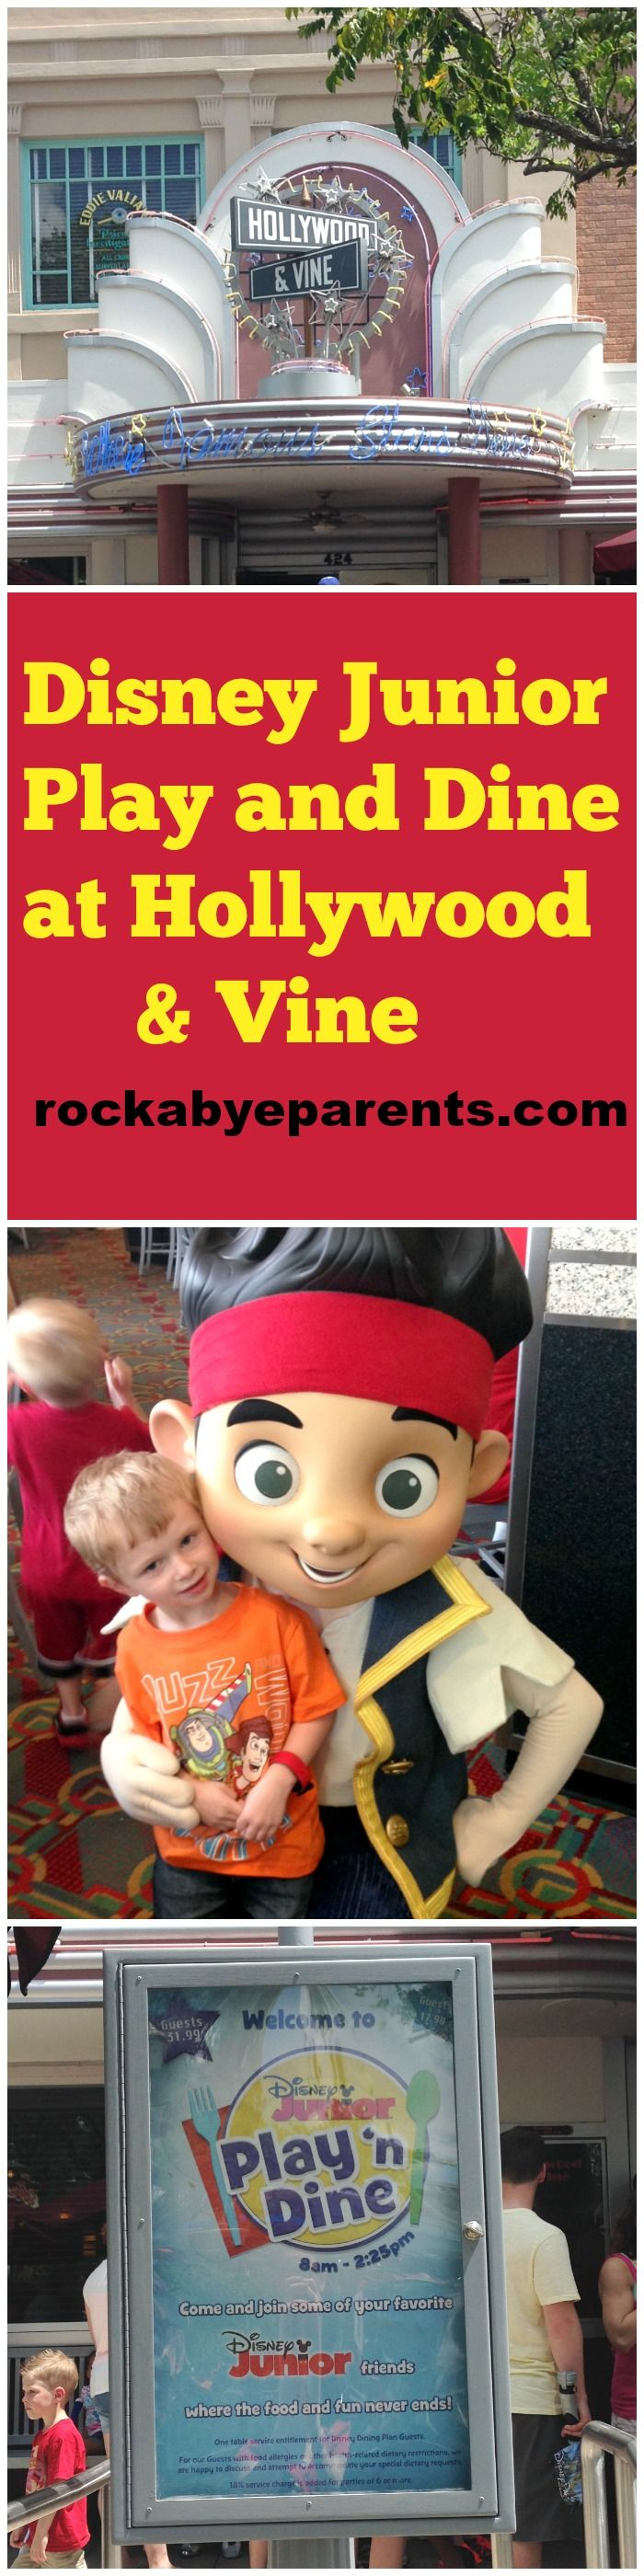 Disney Junior Play and Dine at Hollywood & Vine: The must do meal for any Disney Junior fan! - rockabyeparents.com